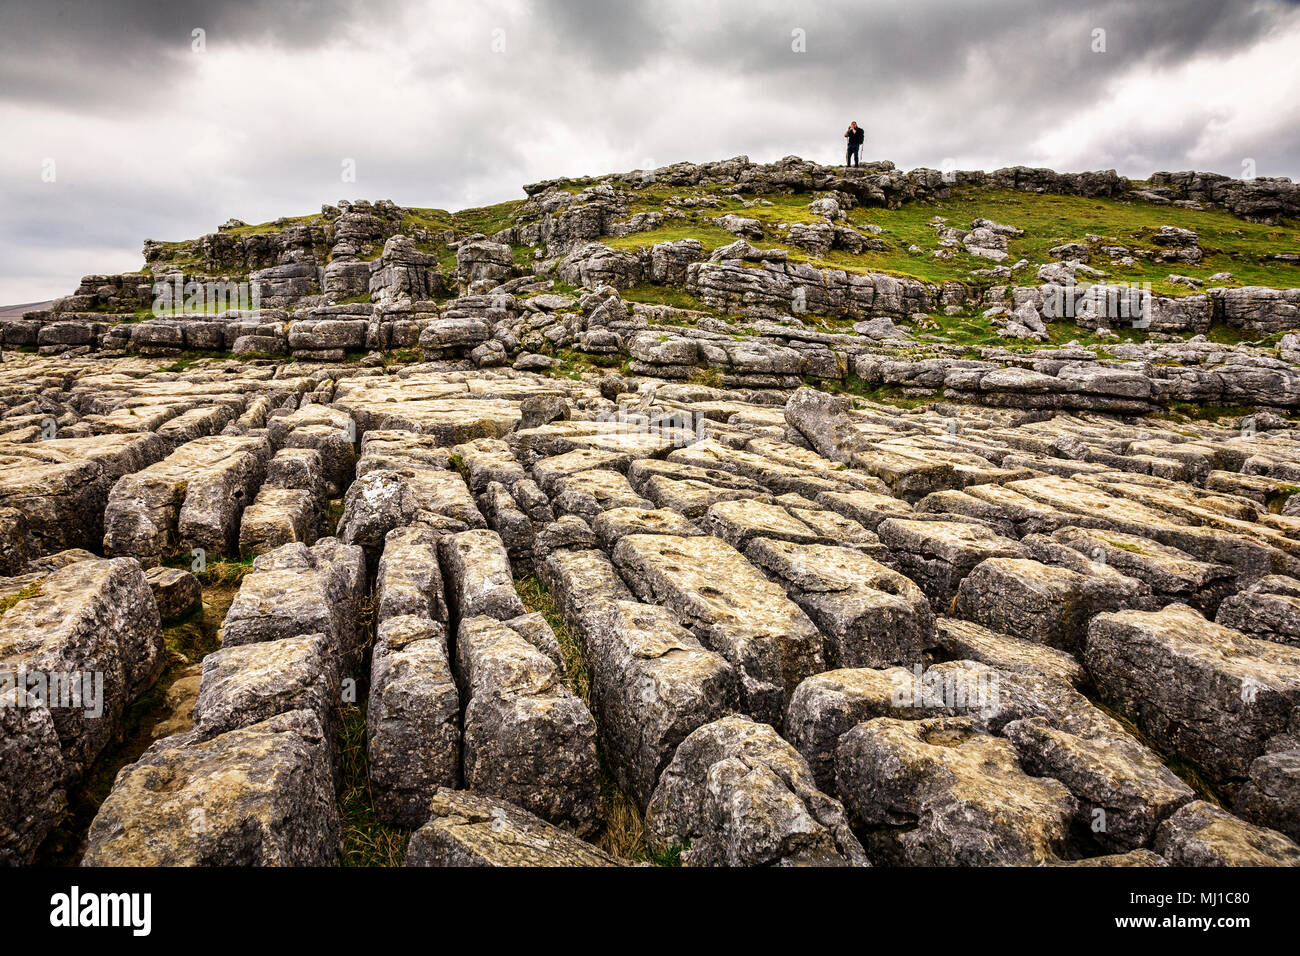 Limestone karst pavement at Malham Cove, Yorkshire Dales, England. - Stock Image